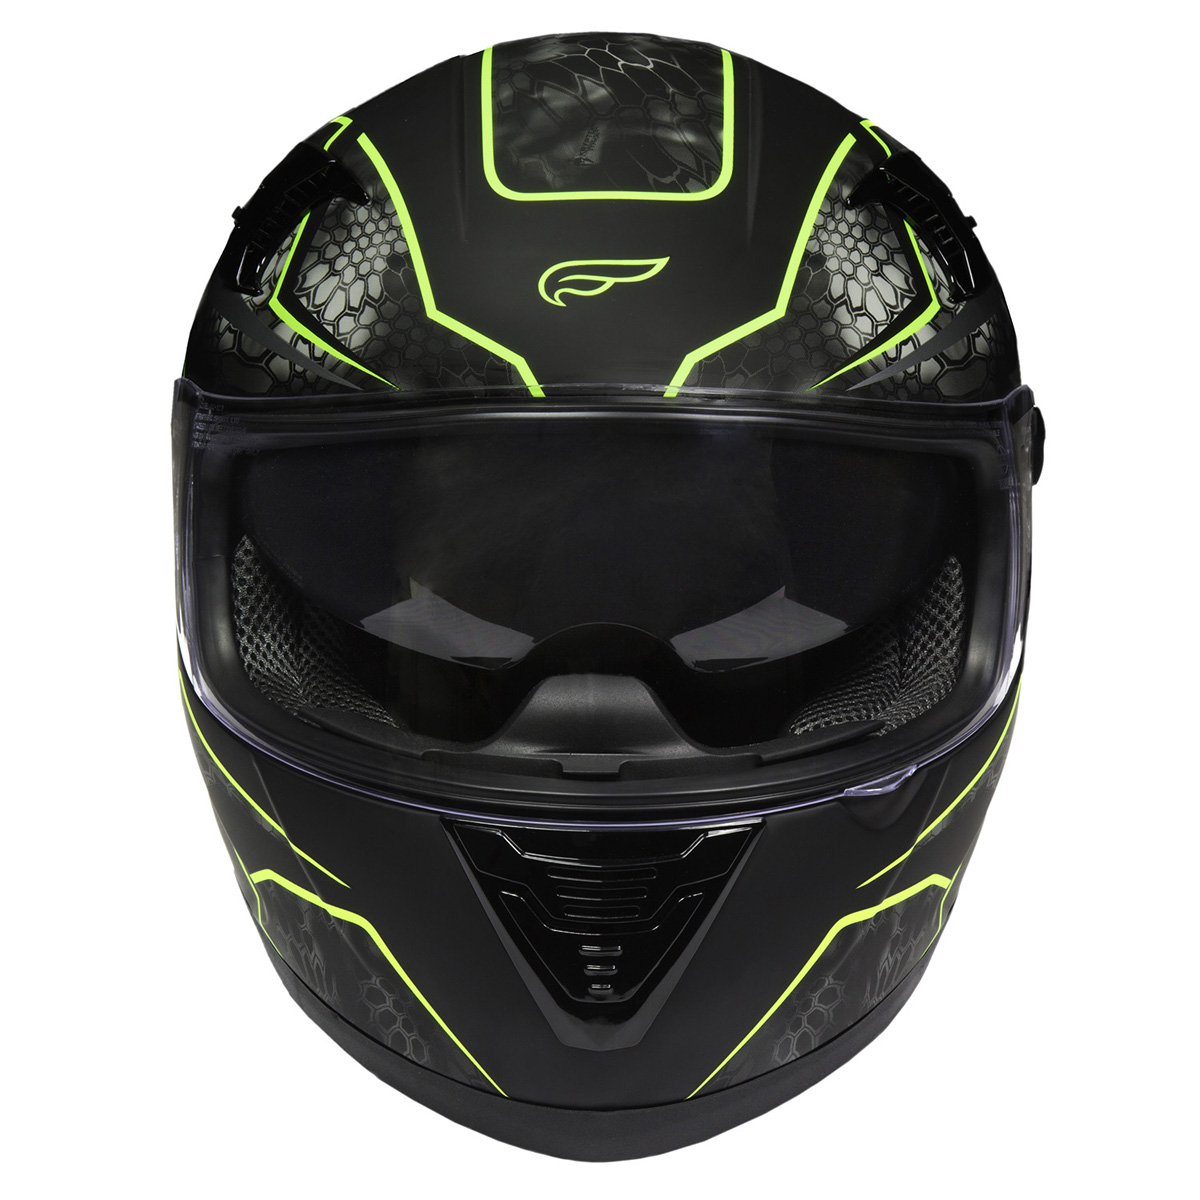 Fulmer-Adult-Full-Face-Motorcycle-Helmet-151-Pulse-DOT-Approved-Street-Bike thumbnail 18